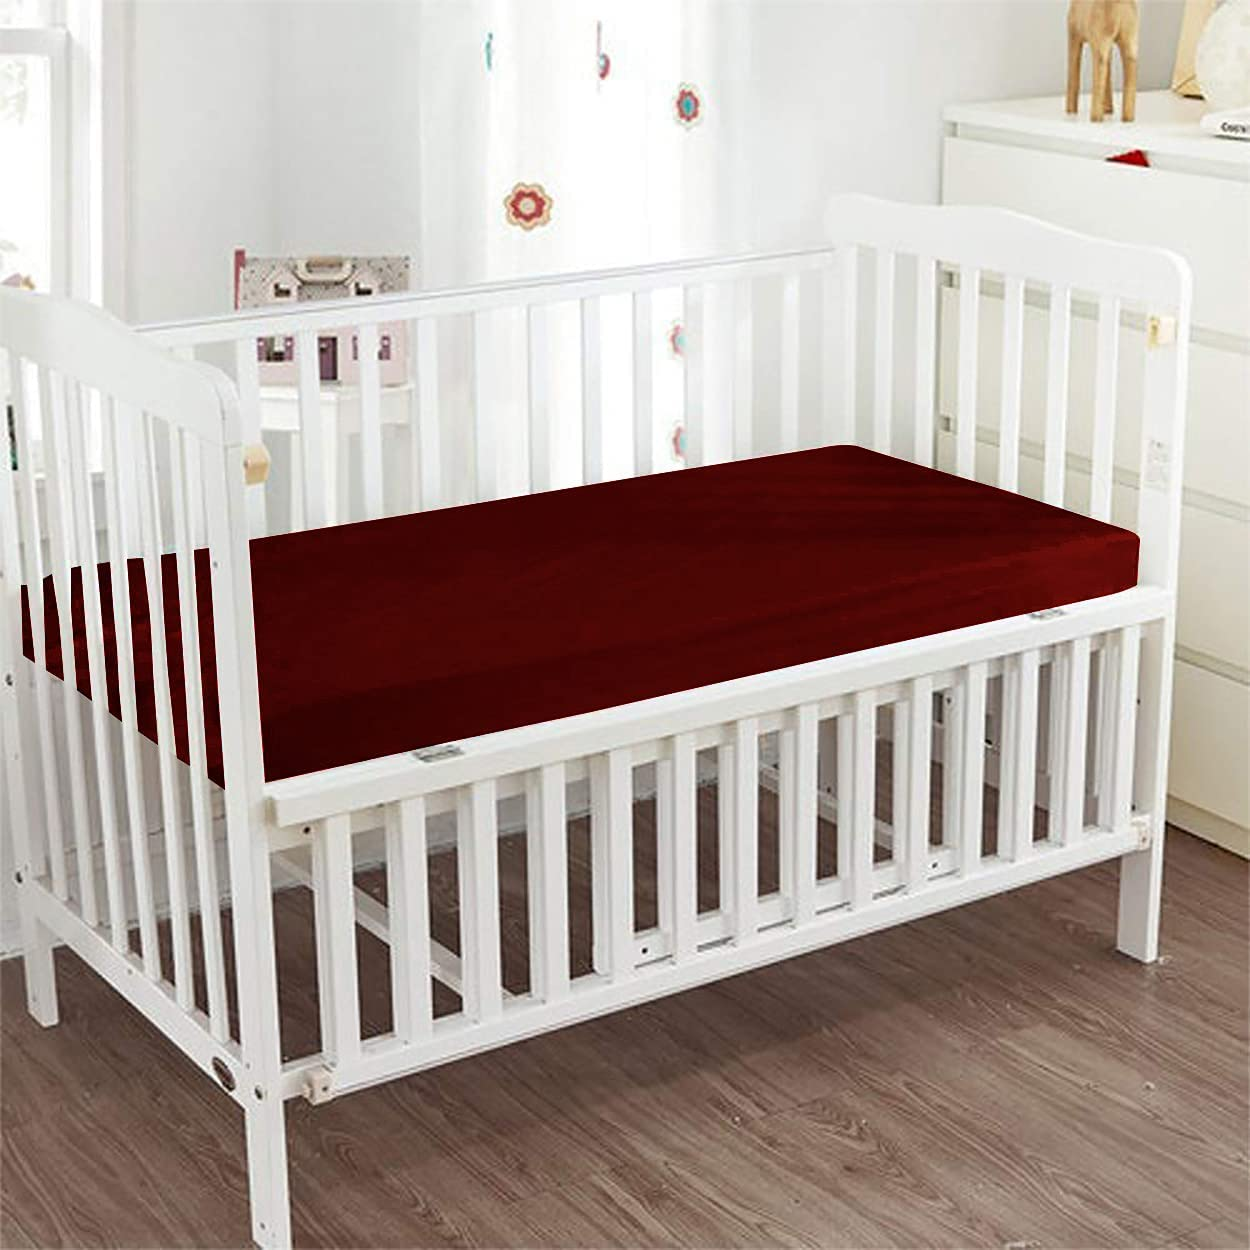 GetBedding Sales of Max 80% OFF SALE items from new works - Fitted Crib Sheet Color Cotto 100% Egyptian Solid